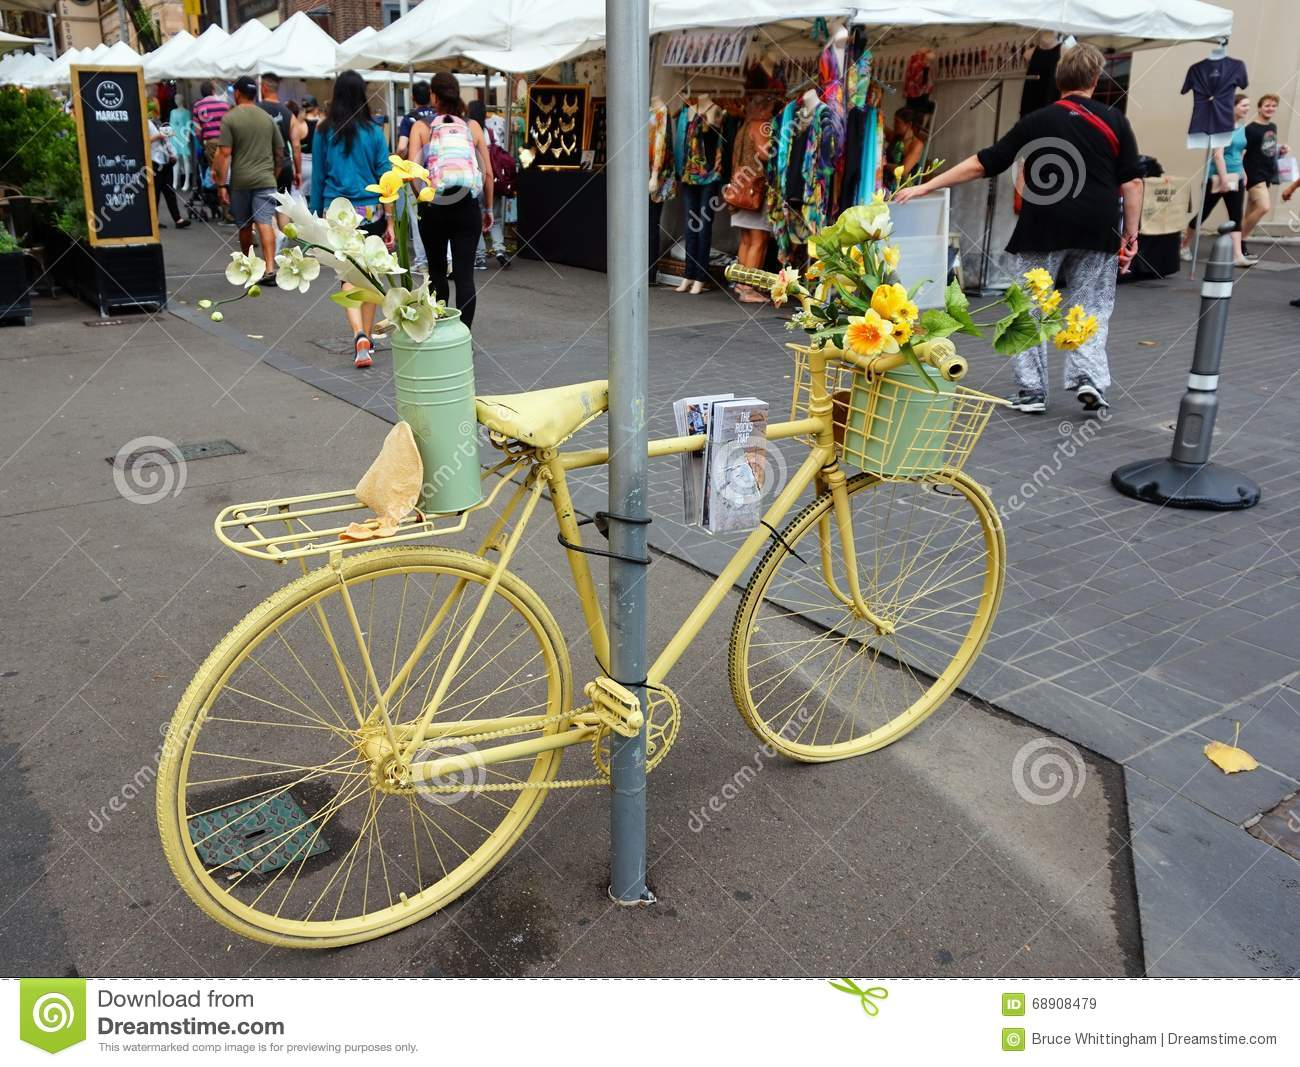 Dreamstime.com & Flowerpots On Yellow Bicycle Editorial Stock Image - Image ...